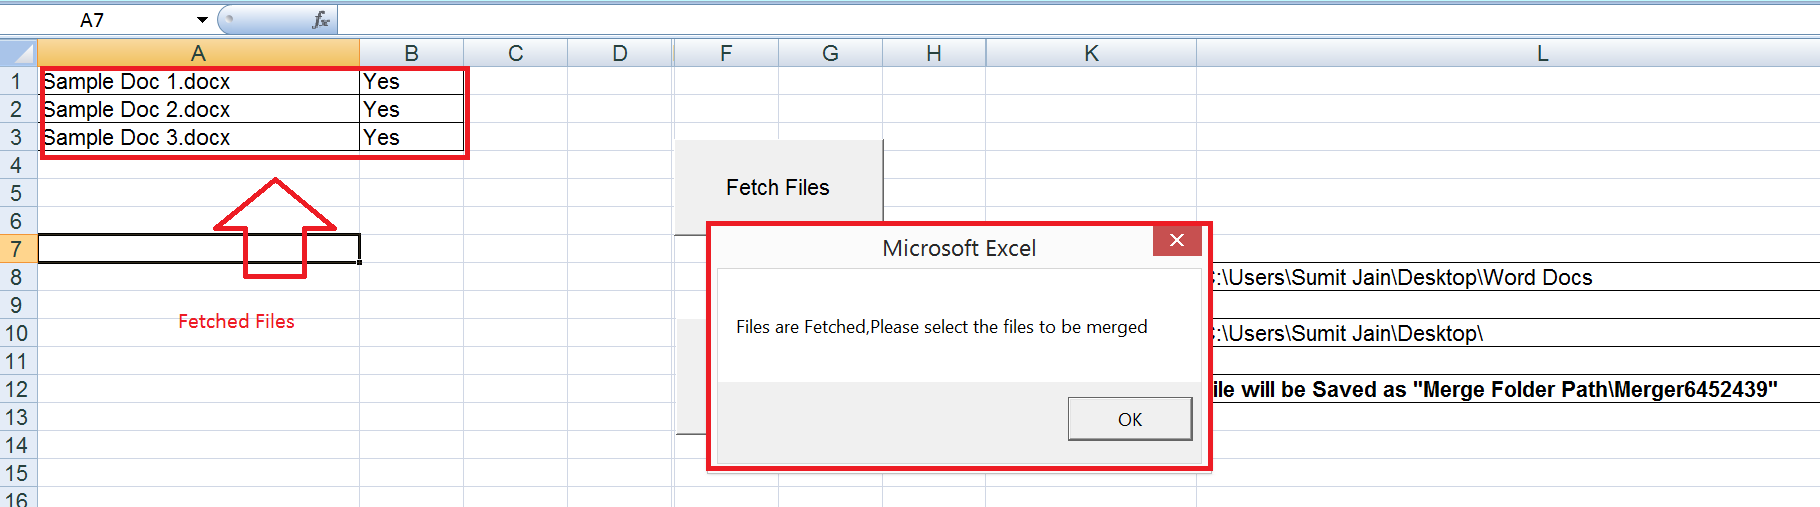 Workbooks merge excel sheets into one workbook : VBA-Excel - Merger - Merge or Combine Many Word Documents Into One